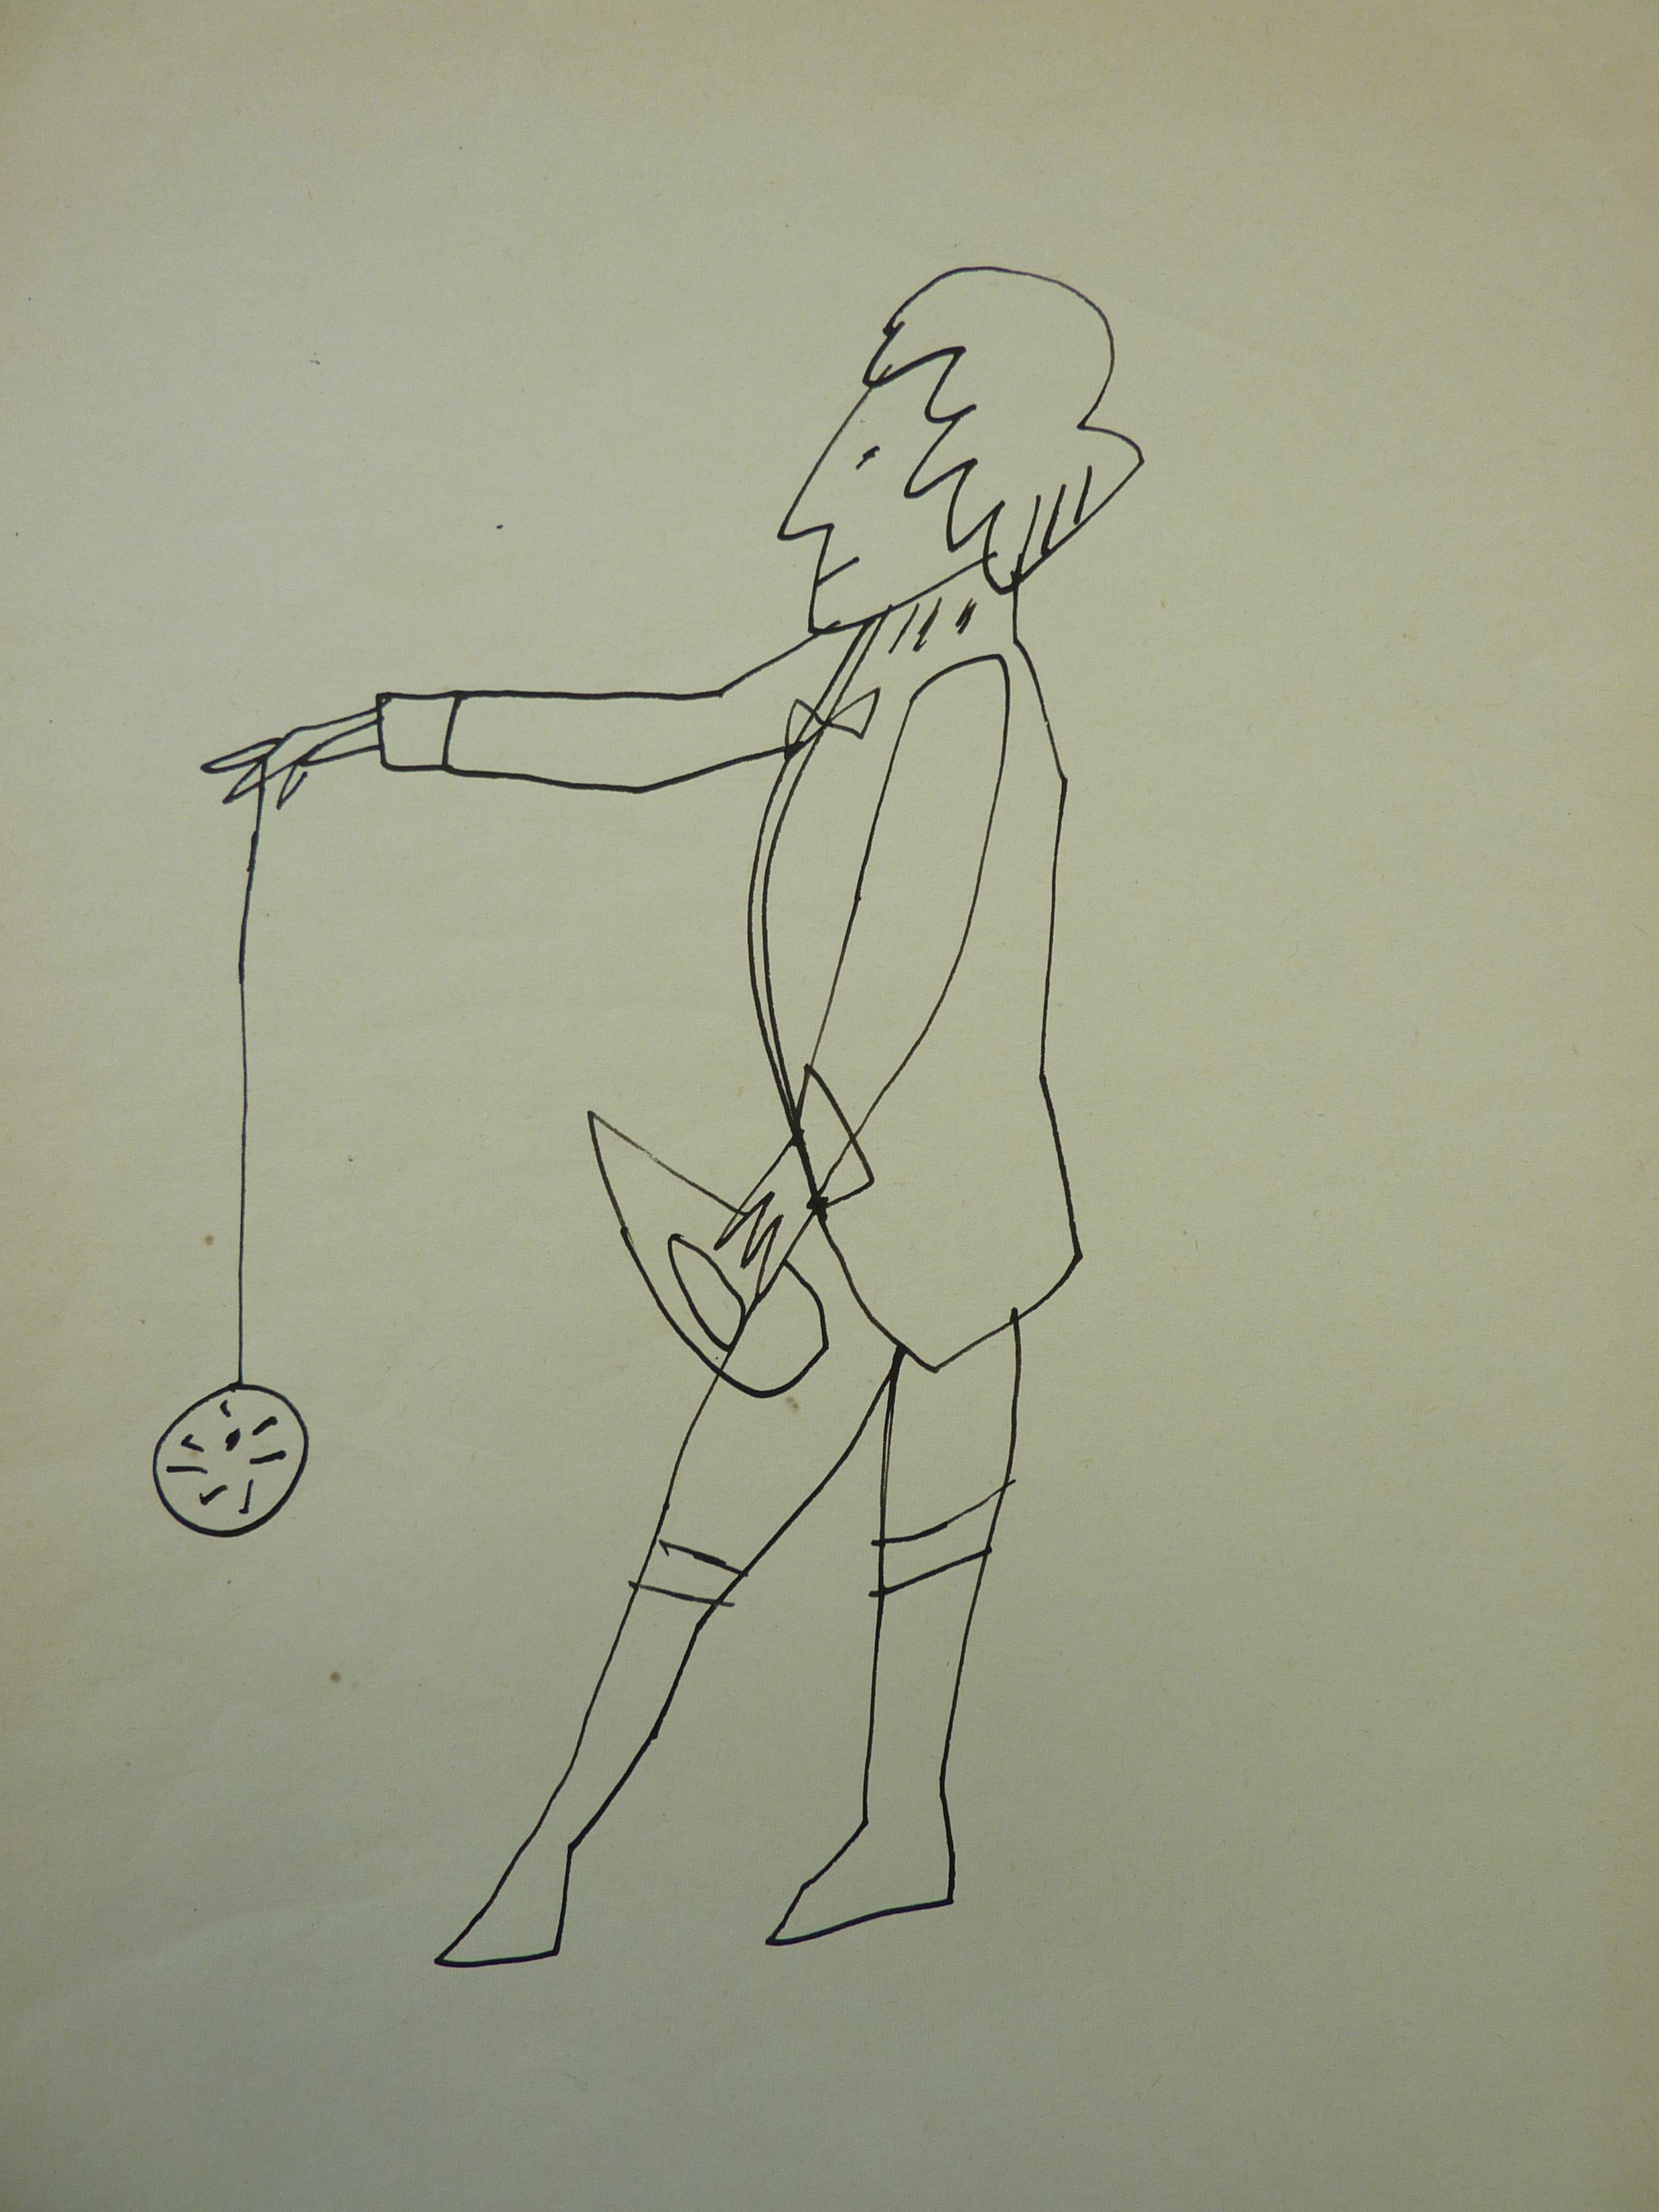 original china ink drawing on paper of man standing with yo-yo by Andy warhol